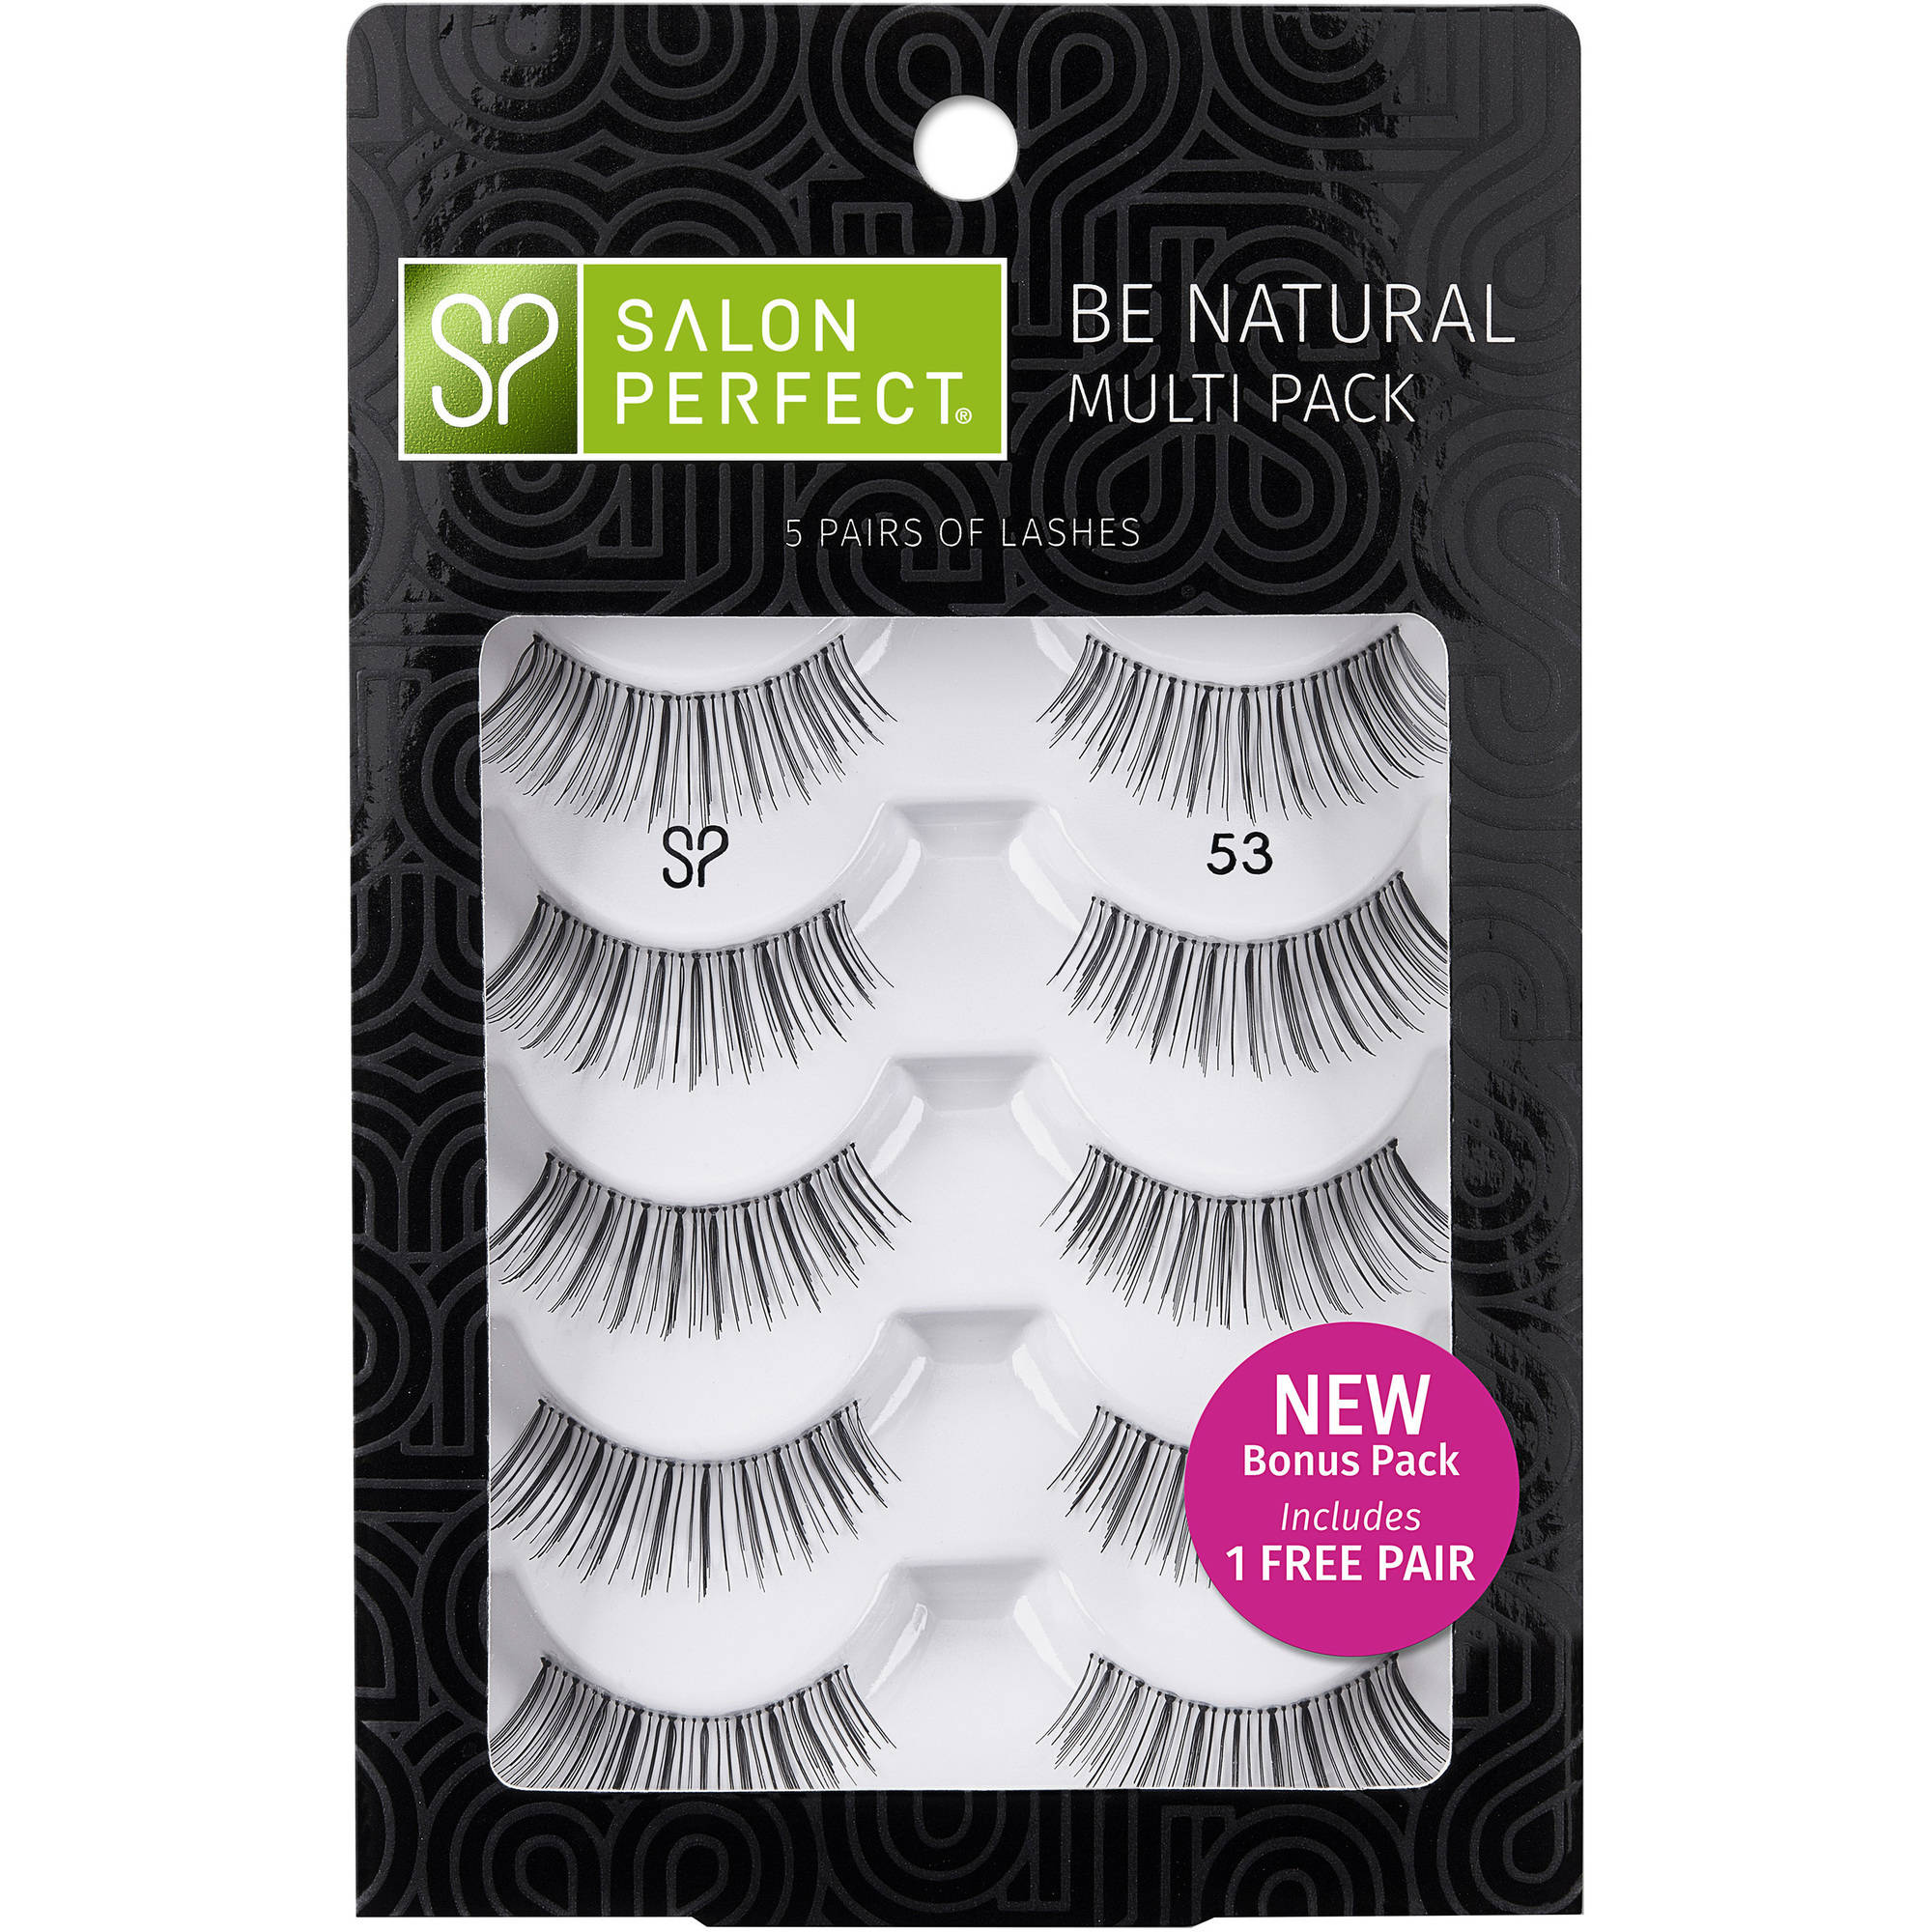 Salon Perfect Natural Multi Pack Eyelashes, 53 Black, 4 pr